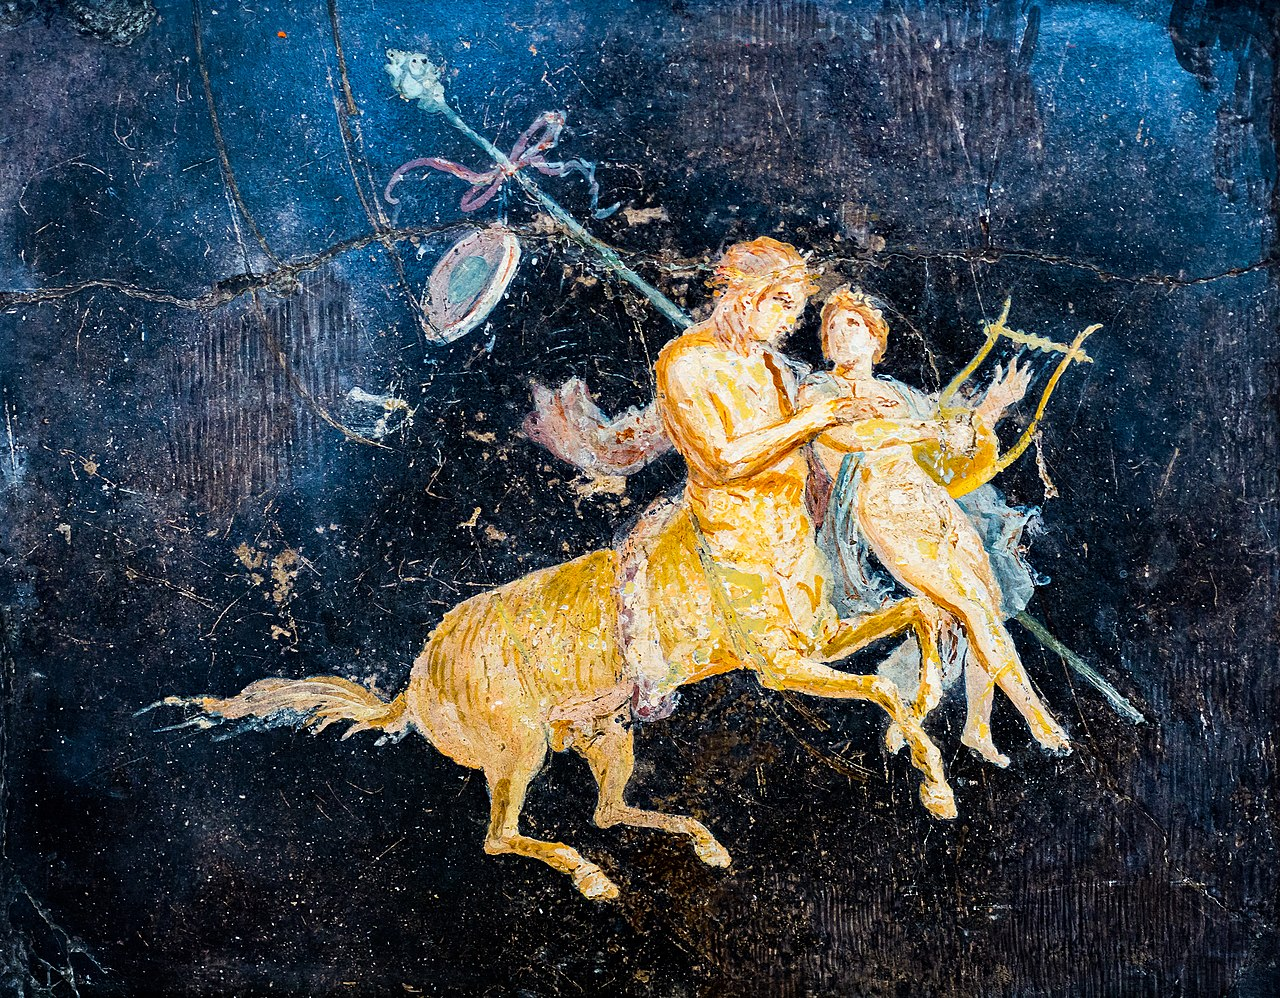 Wall painting - male and female centaurs with women and boys - Pompeii (villa of Cicero) - Napoli MAN 9133 - 02.jpg